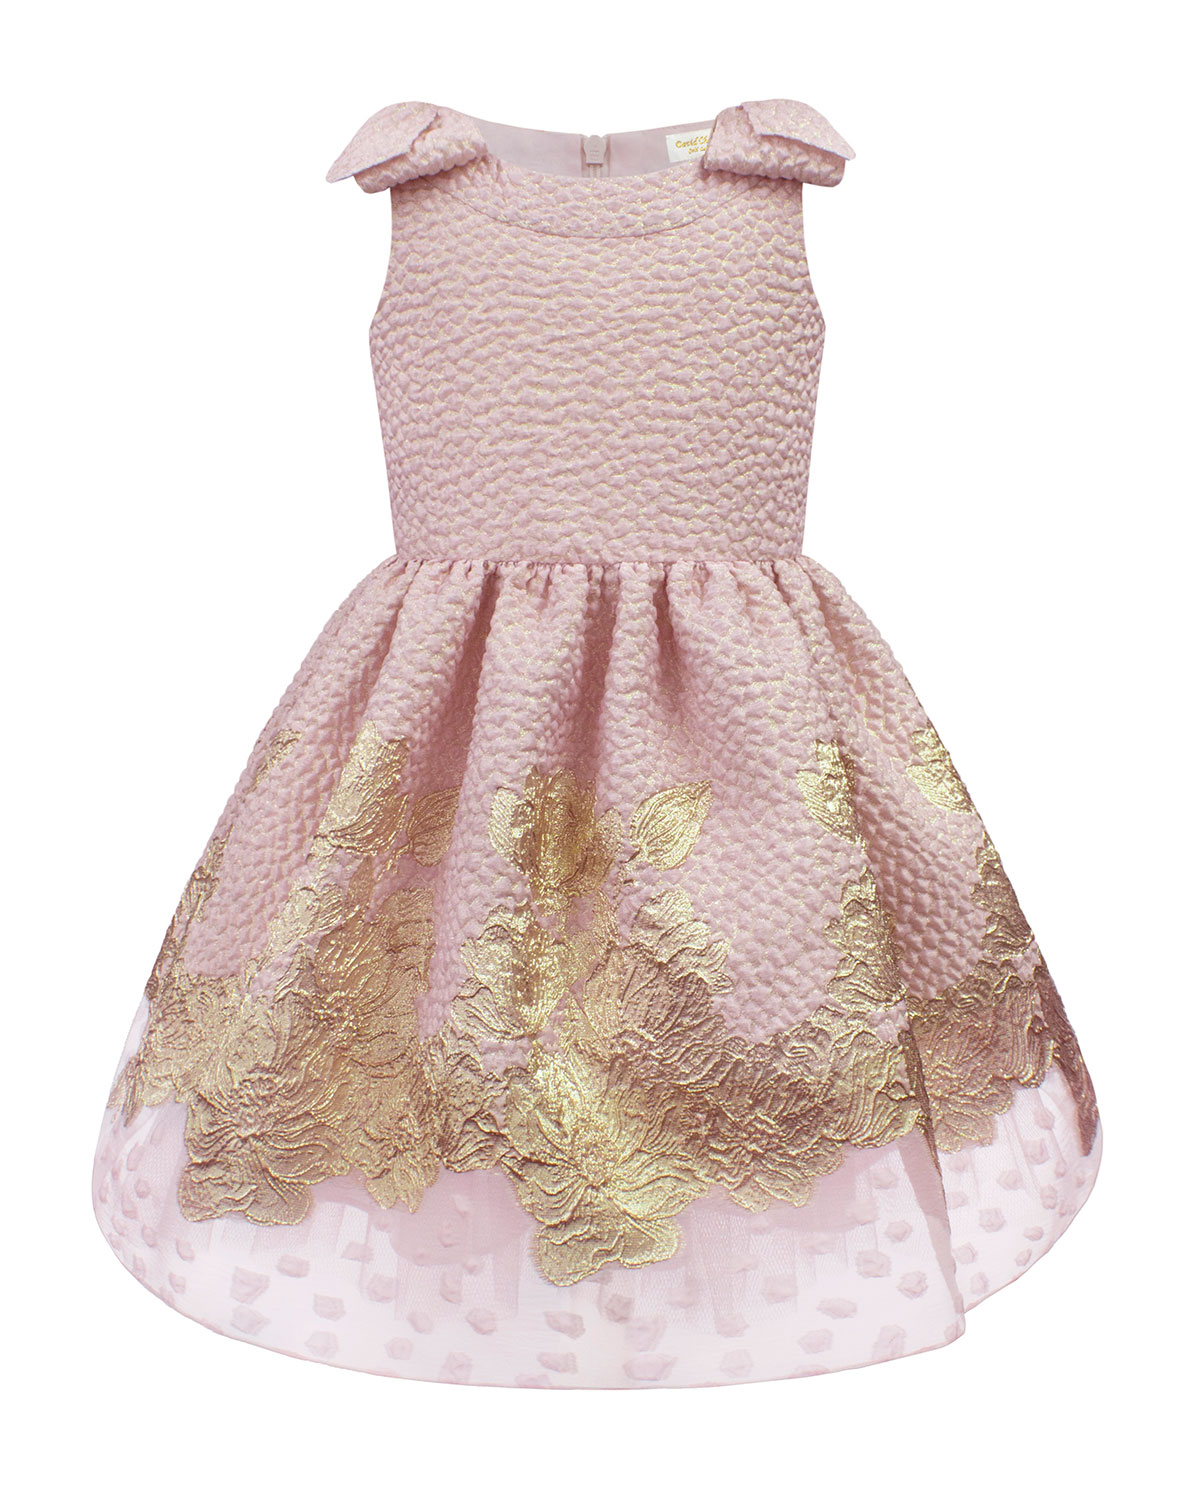 David Charles Girl's Embroidered Jacquard Bow-Shoulder Party Dress, Size 4-10